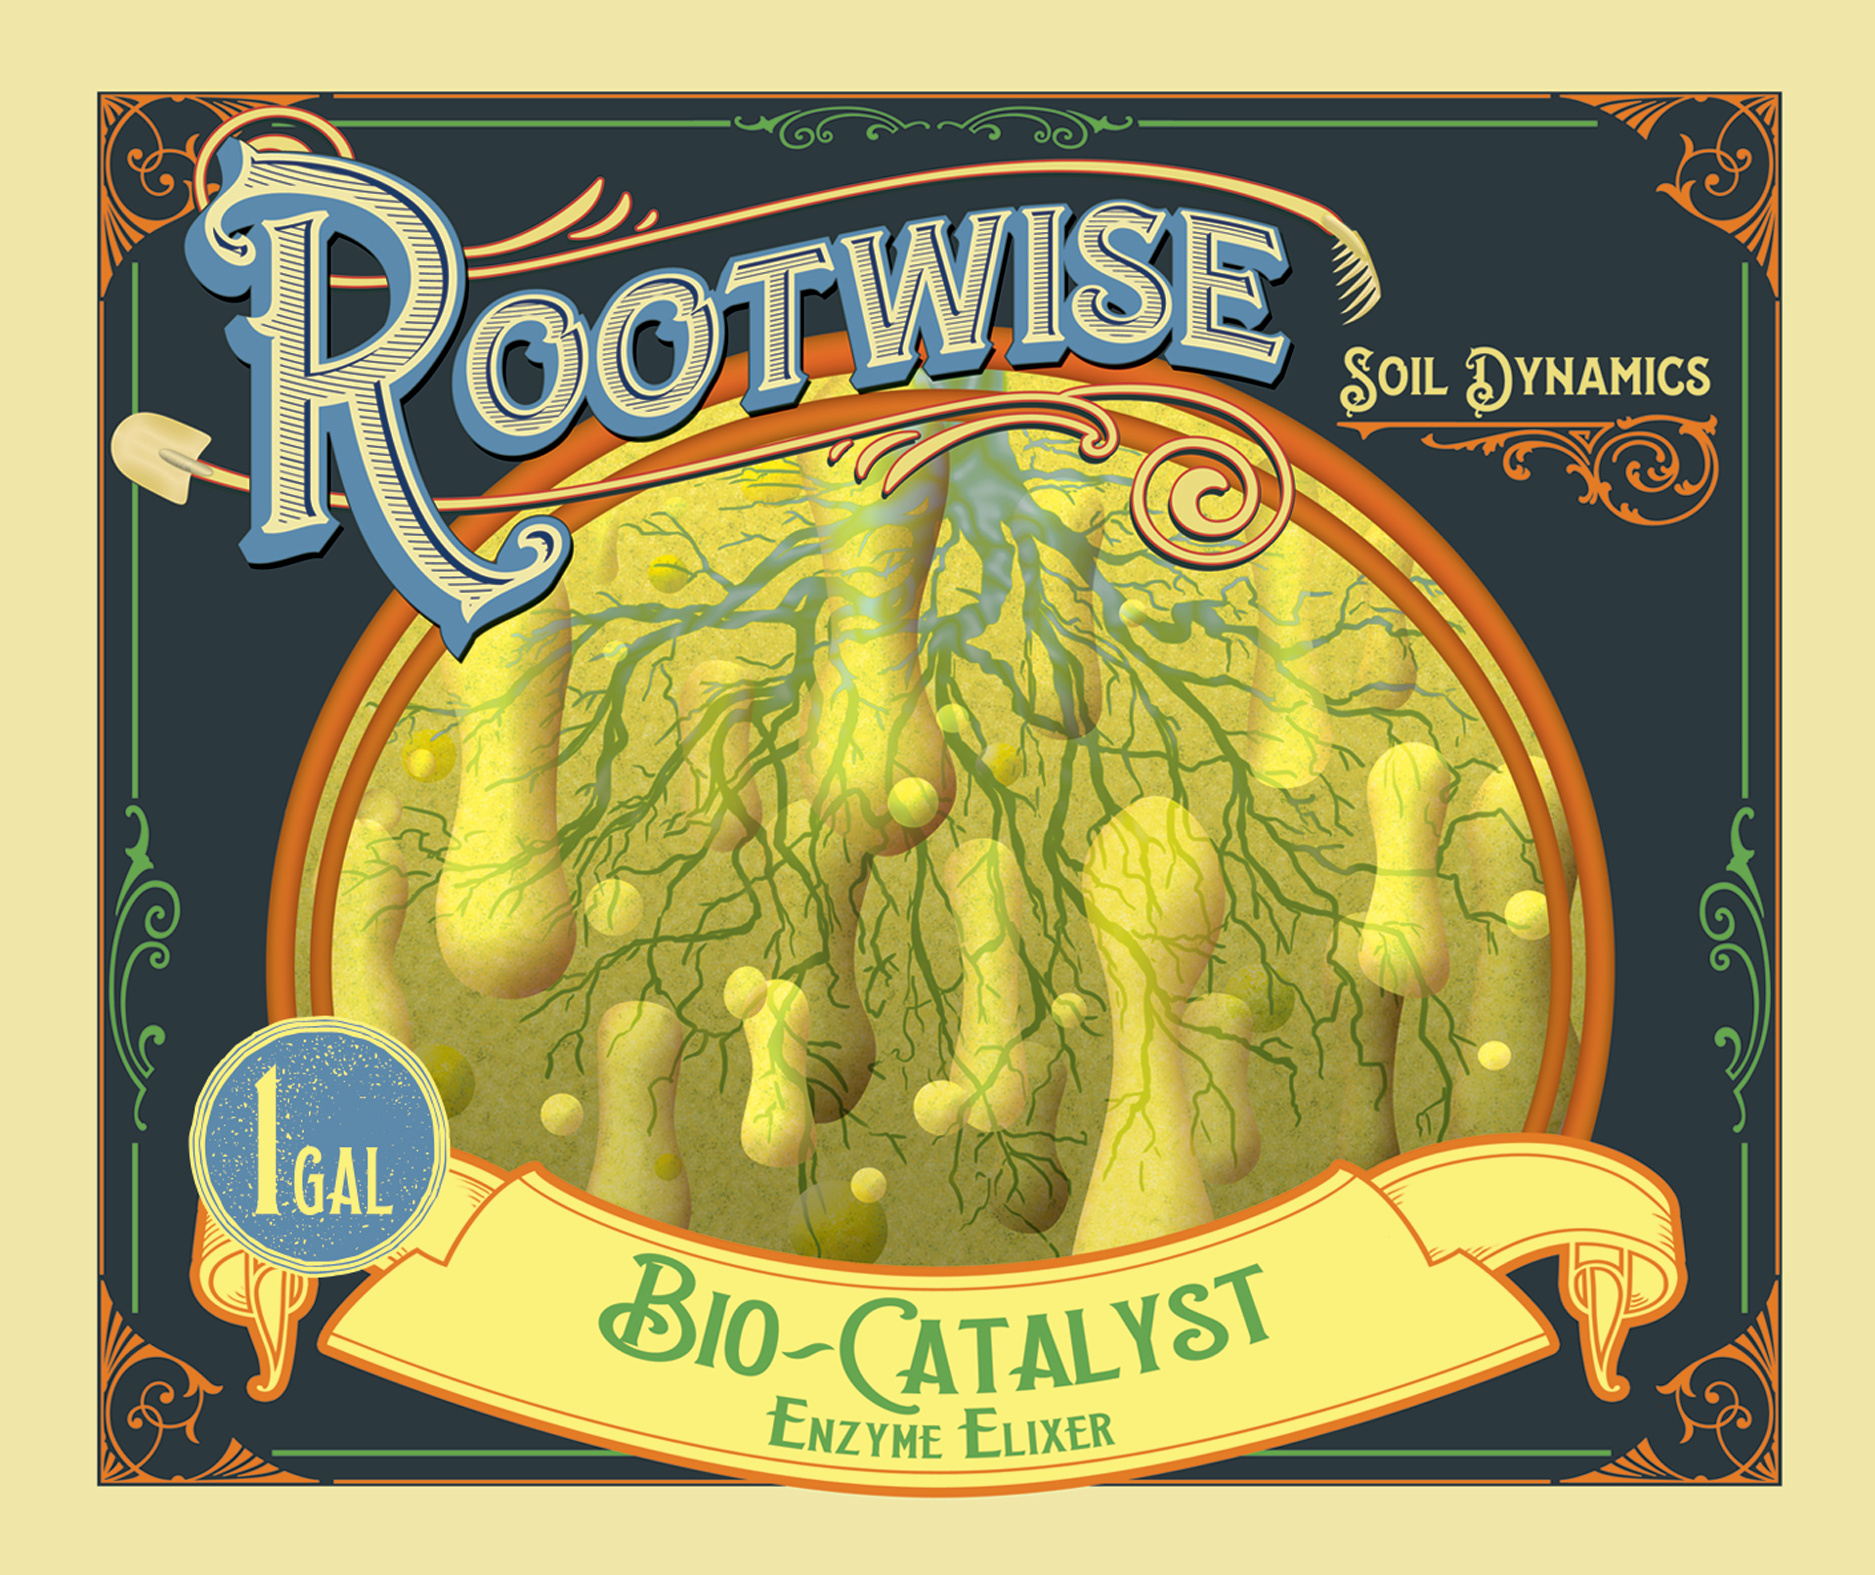 Rootwise Bio-Catalyst